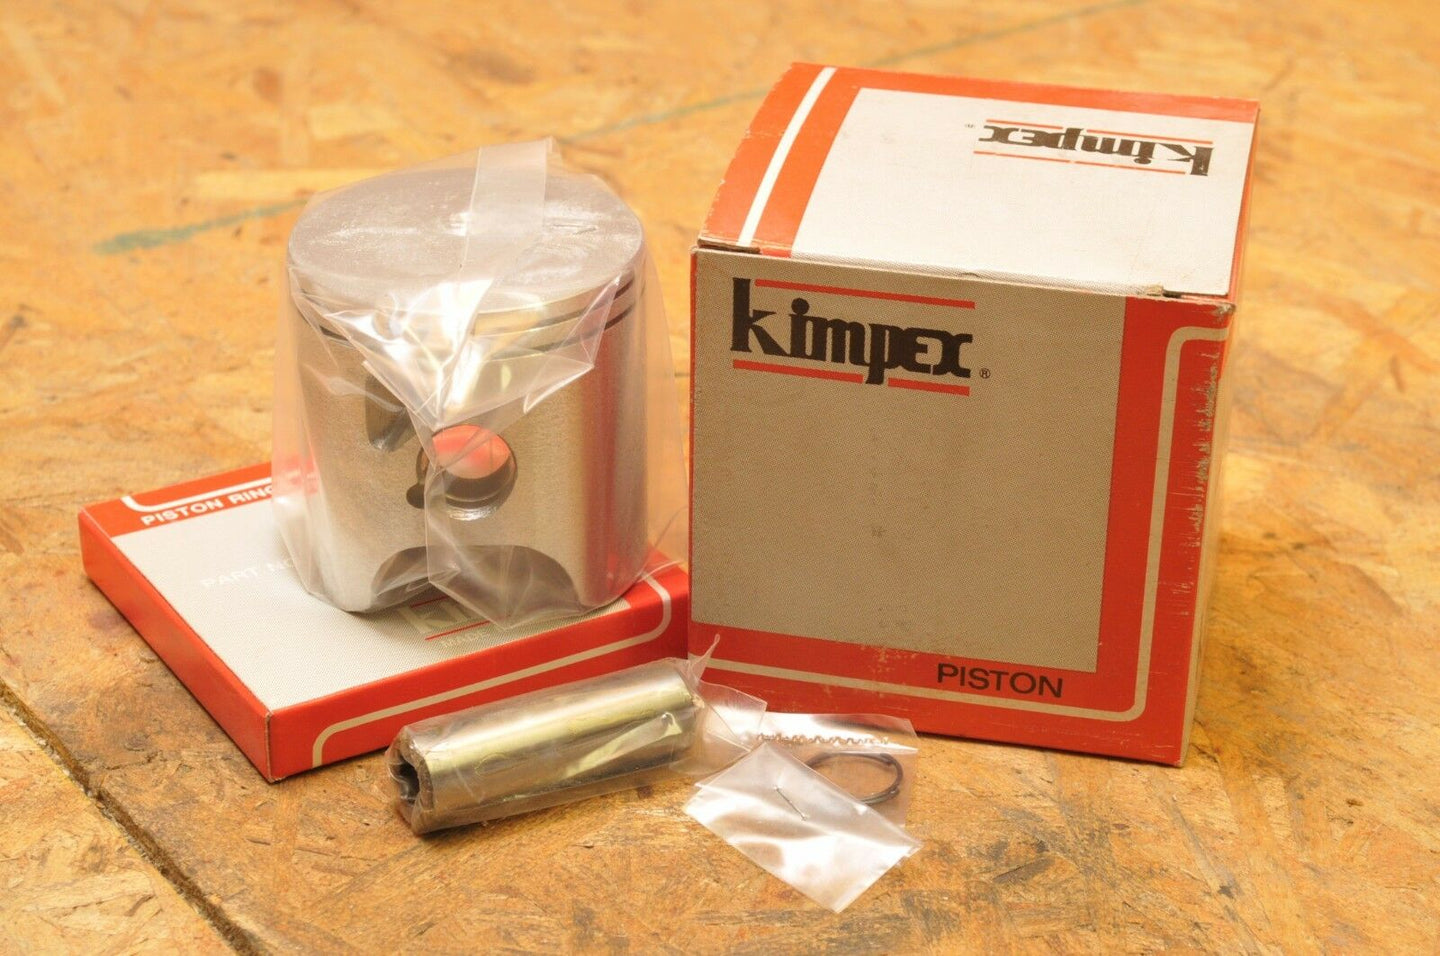 NEW NOS KIMPEX PISTON KIT 09-717 POLARIS INDY 340 LITE TOURING CLASSIC 3085840